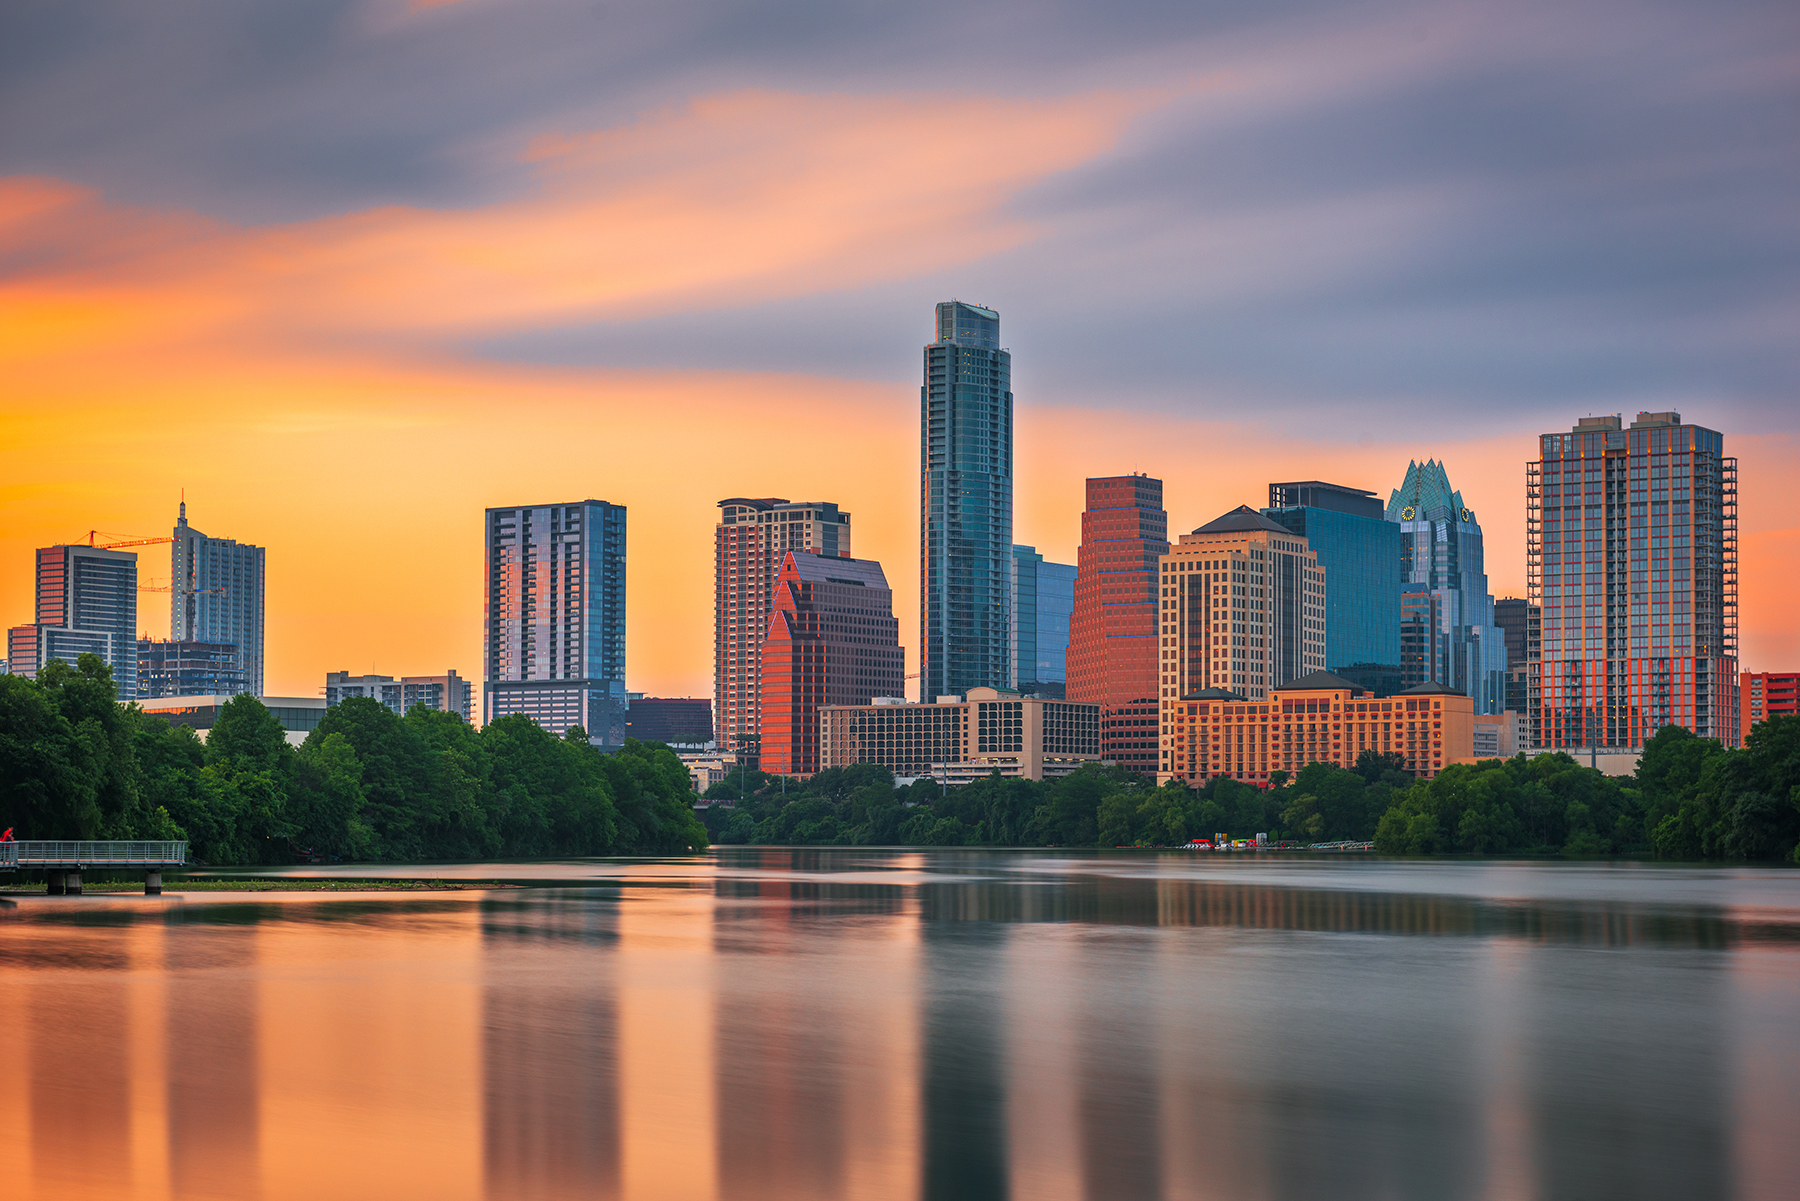 Austin skyline at sunset viewed from Lady Bird Lake and Colorado River